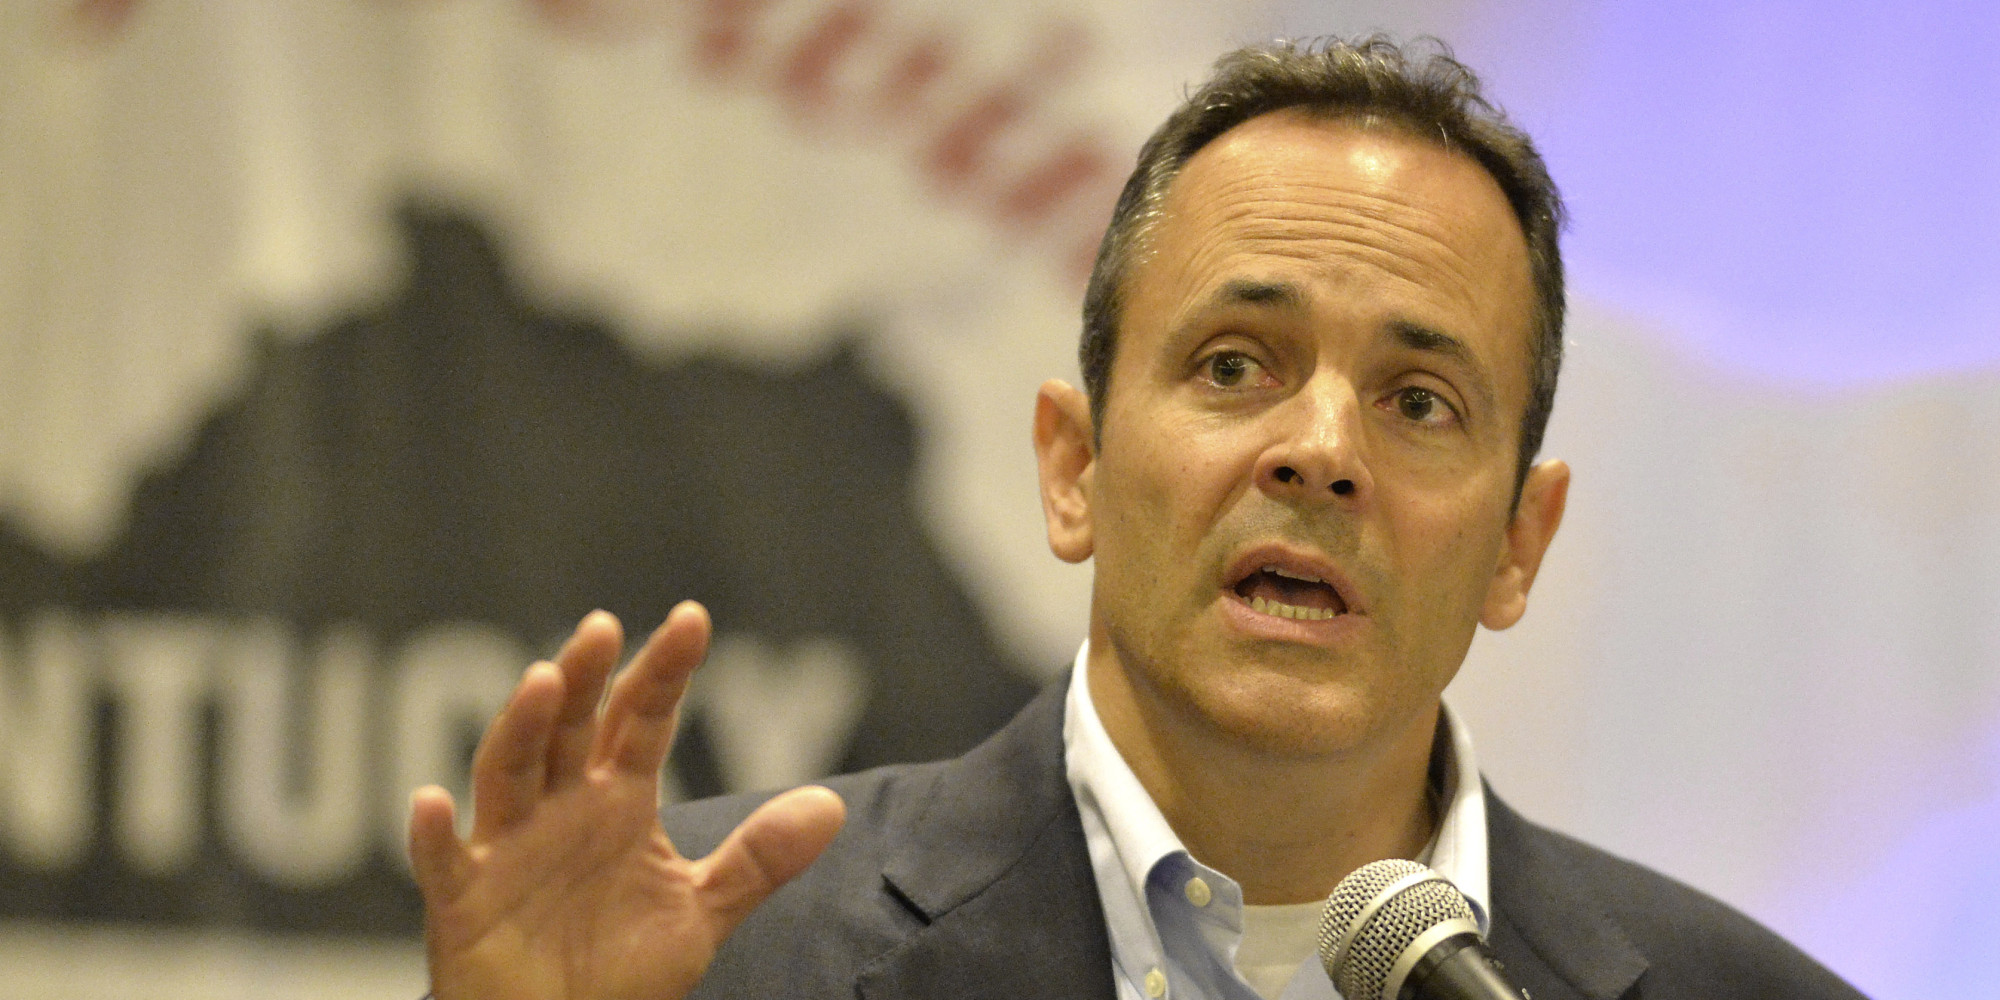 Kentucky Republican gubernatorial candidate Matt Bevin speaks at a candidates forum during a meeting of county judge executives and magistrates conference, in Louisville, Ky., Friday, June 19, 2015. (AP Photo/Timothy D. Easley)